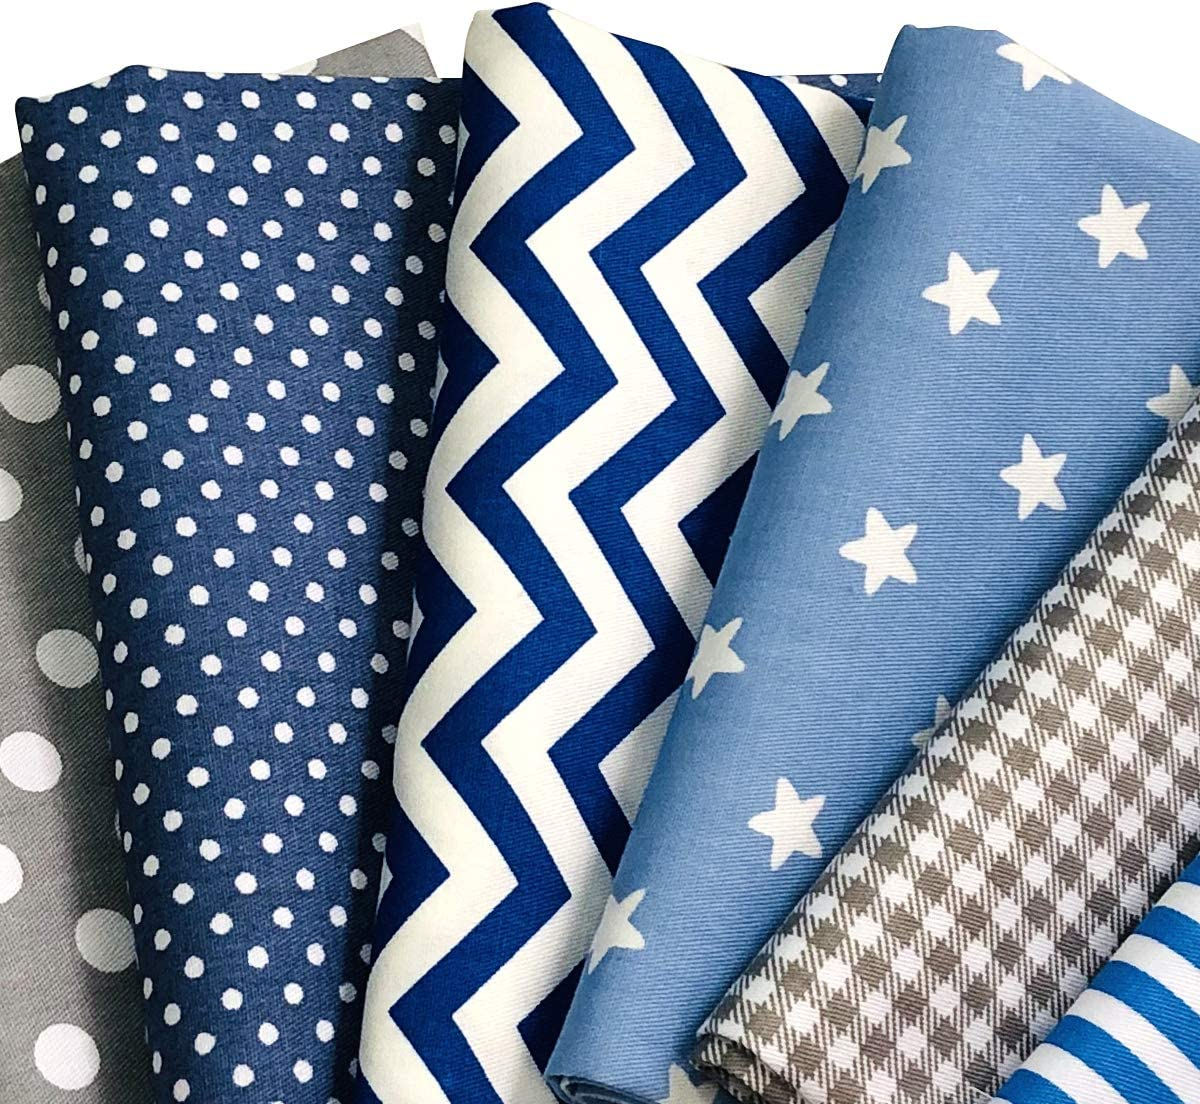 ANDRIMAX 7 pcs 18x22 Pre-Cut Quilt Squares Stripe Dot Fat Quarters Fabric Bundles for Patchwork Quilting and DIY Sewing Projects